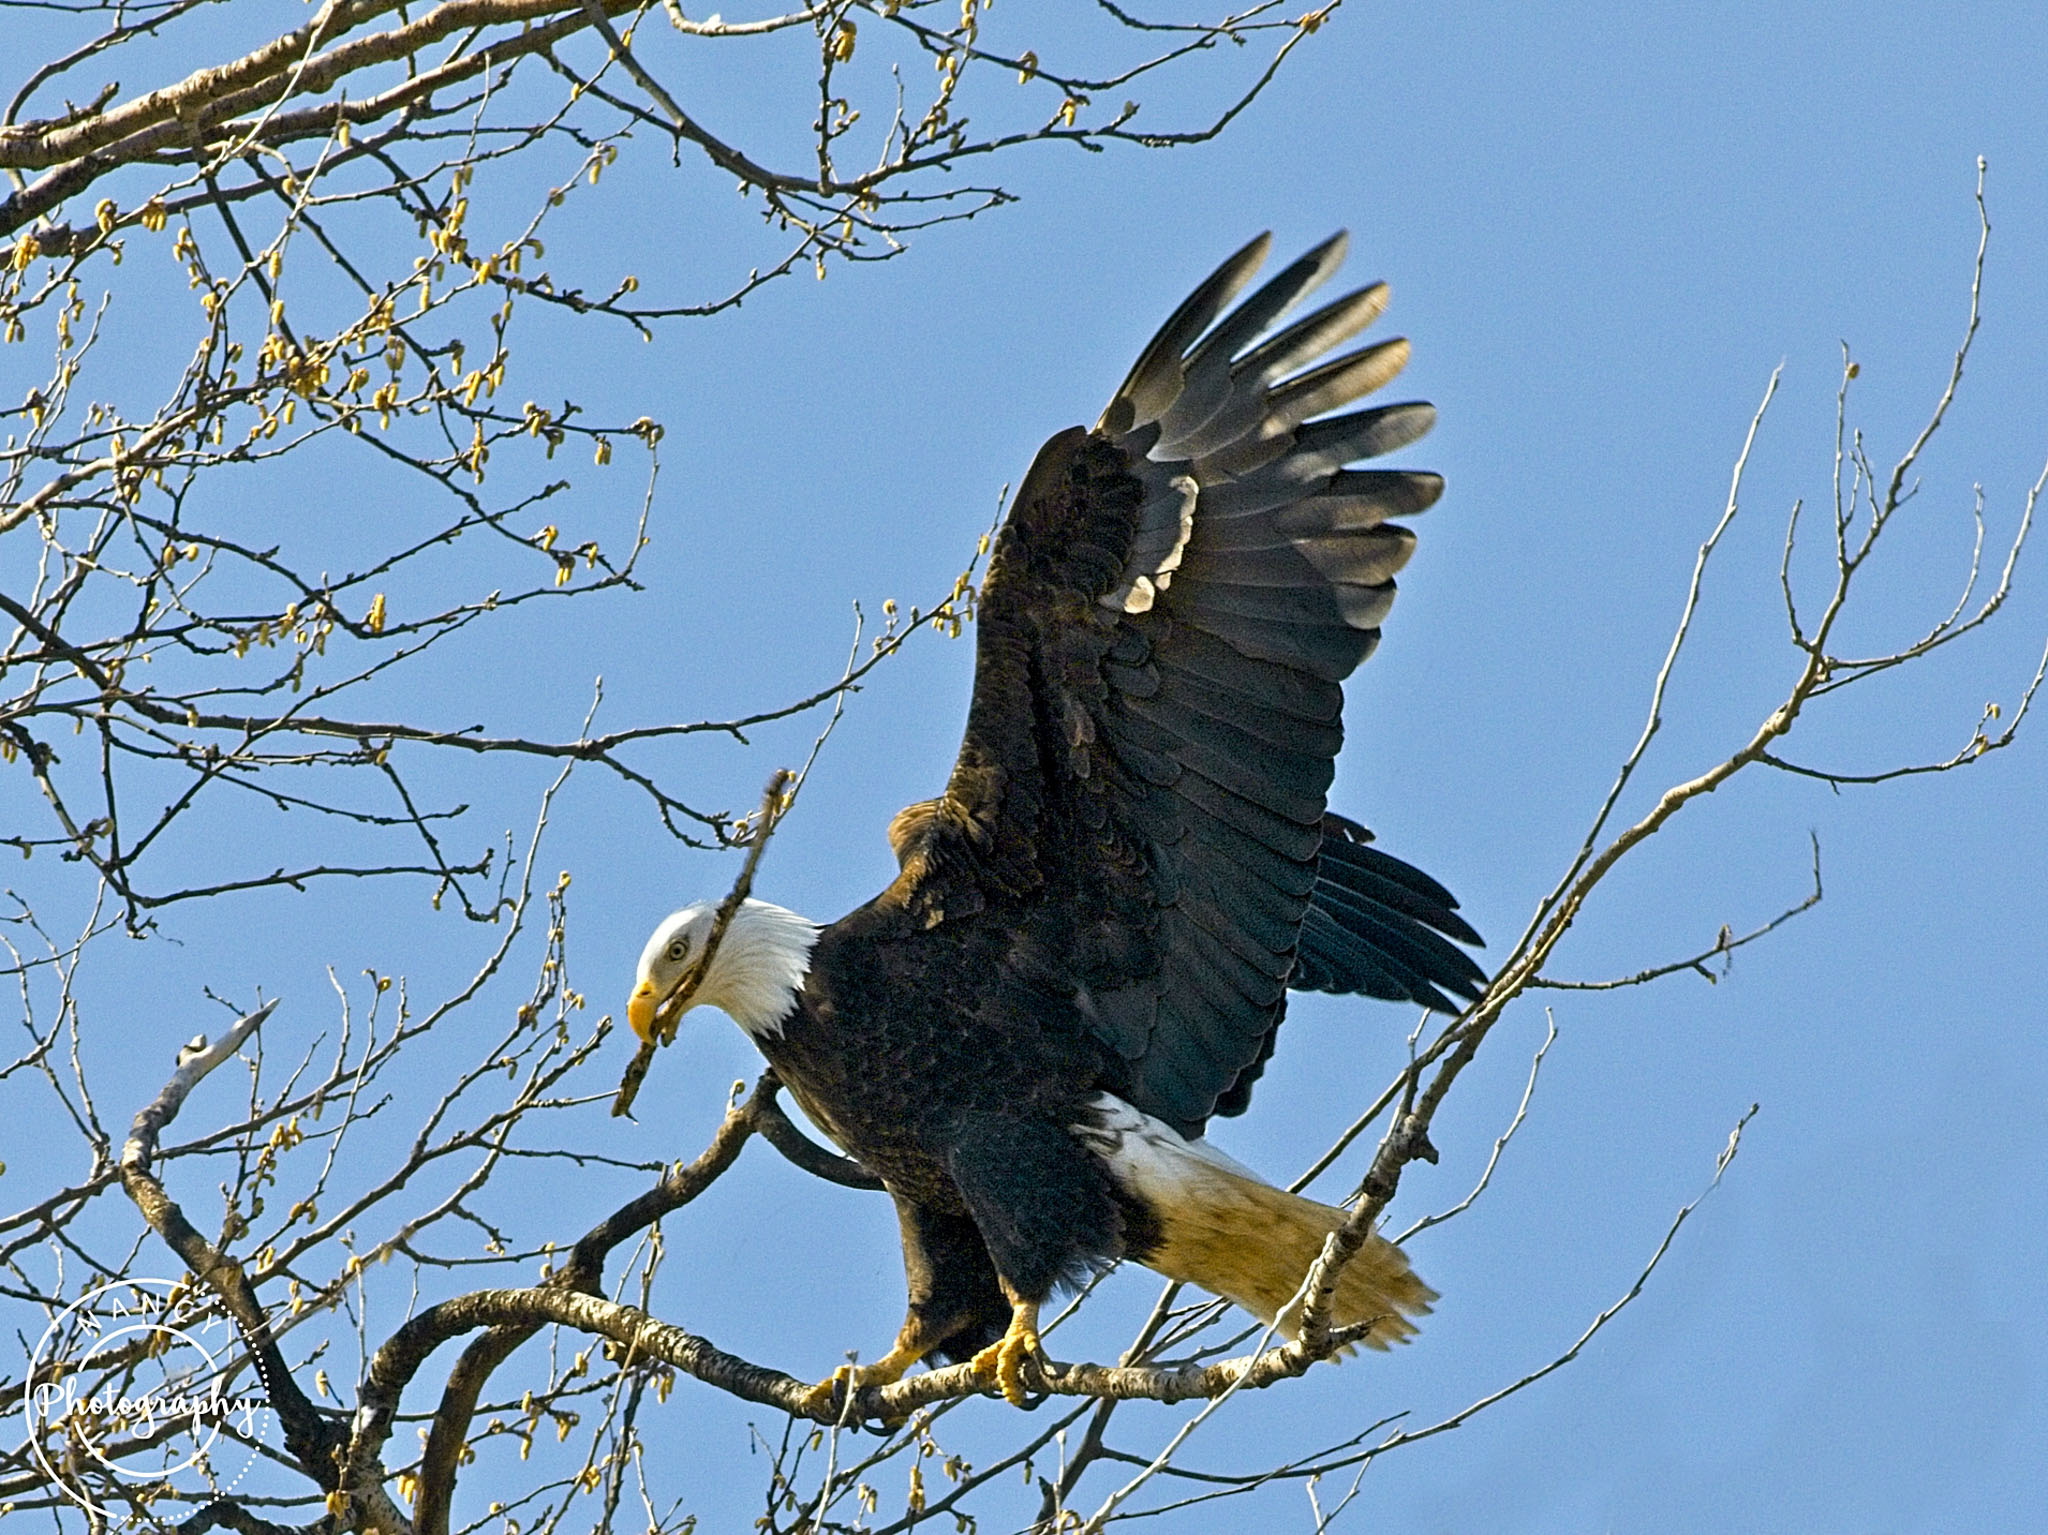 Eagle with nest building stick -  Nancy Cunningham